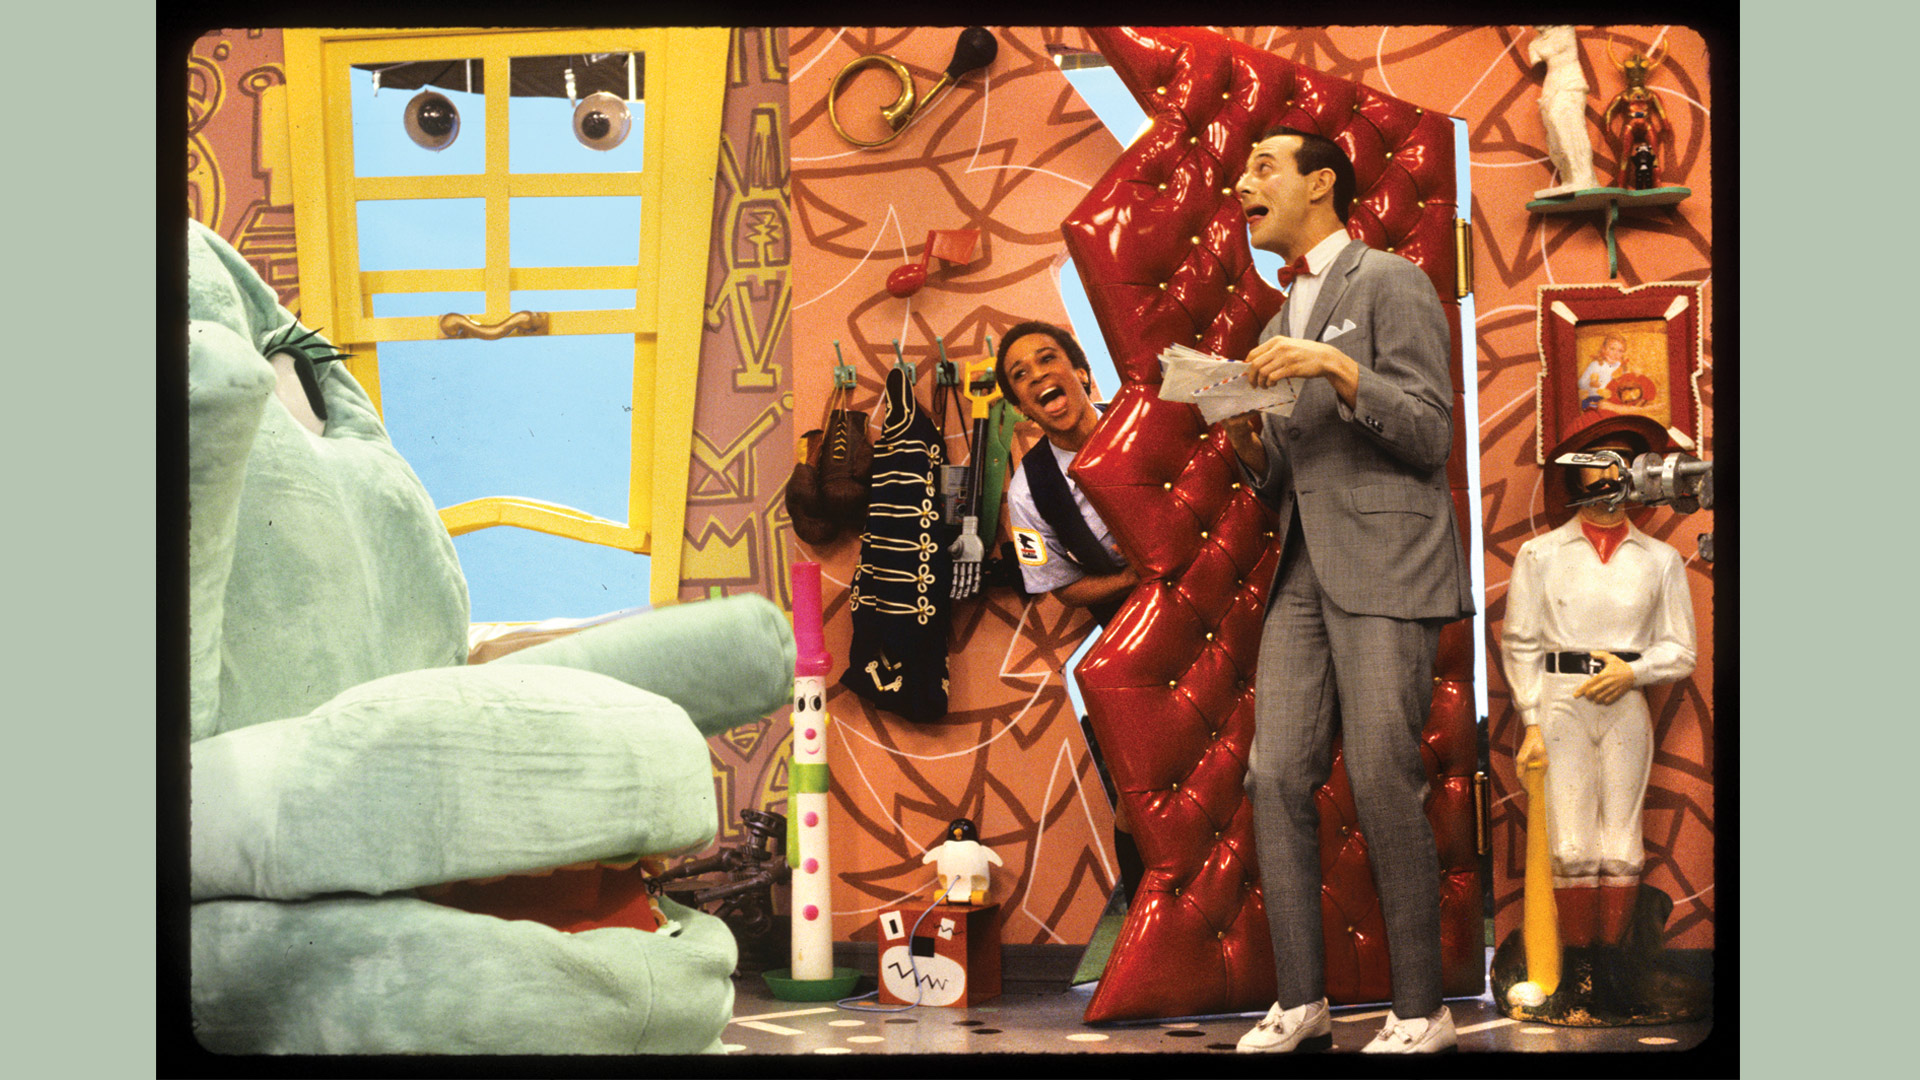 Pee-wee's Playhouse (1986-1990; repeats from 1990-1991)